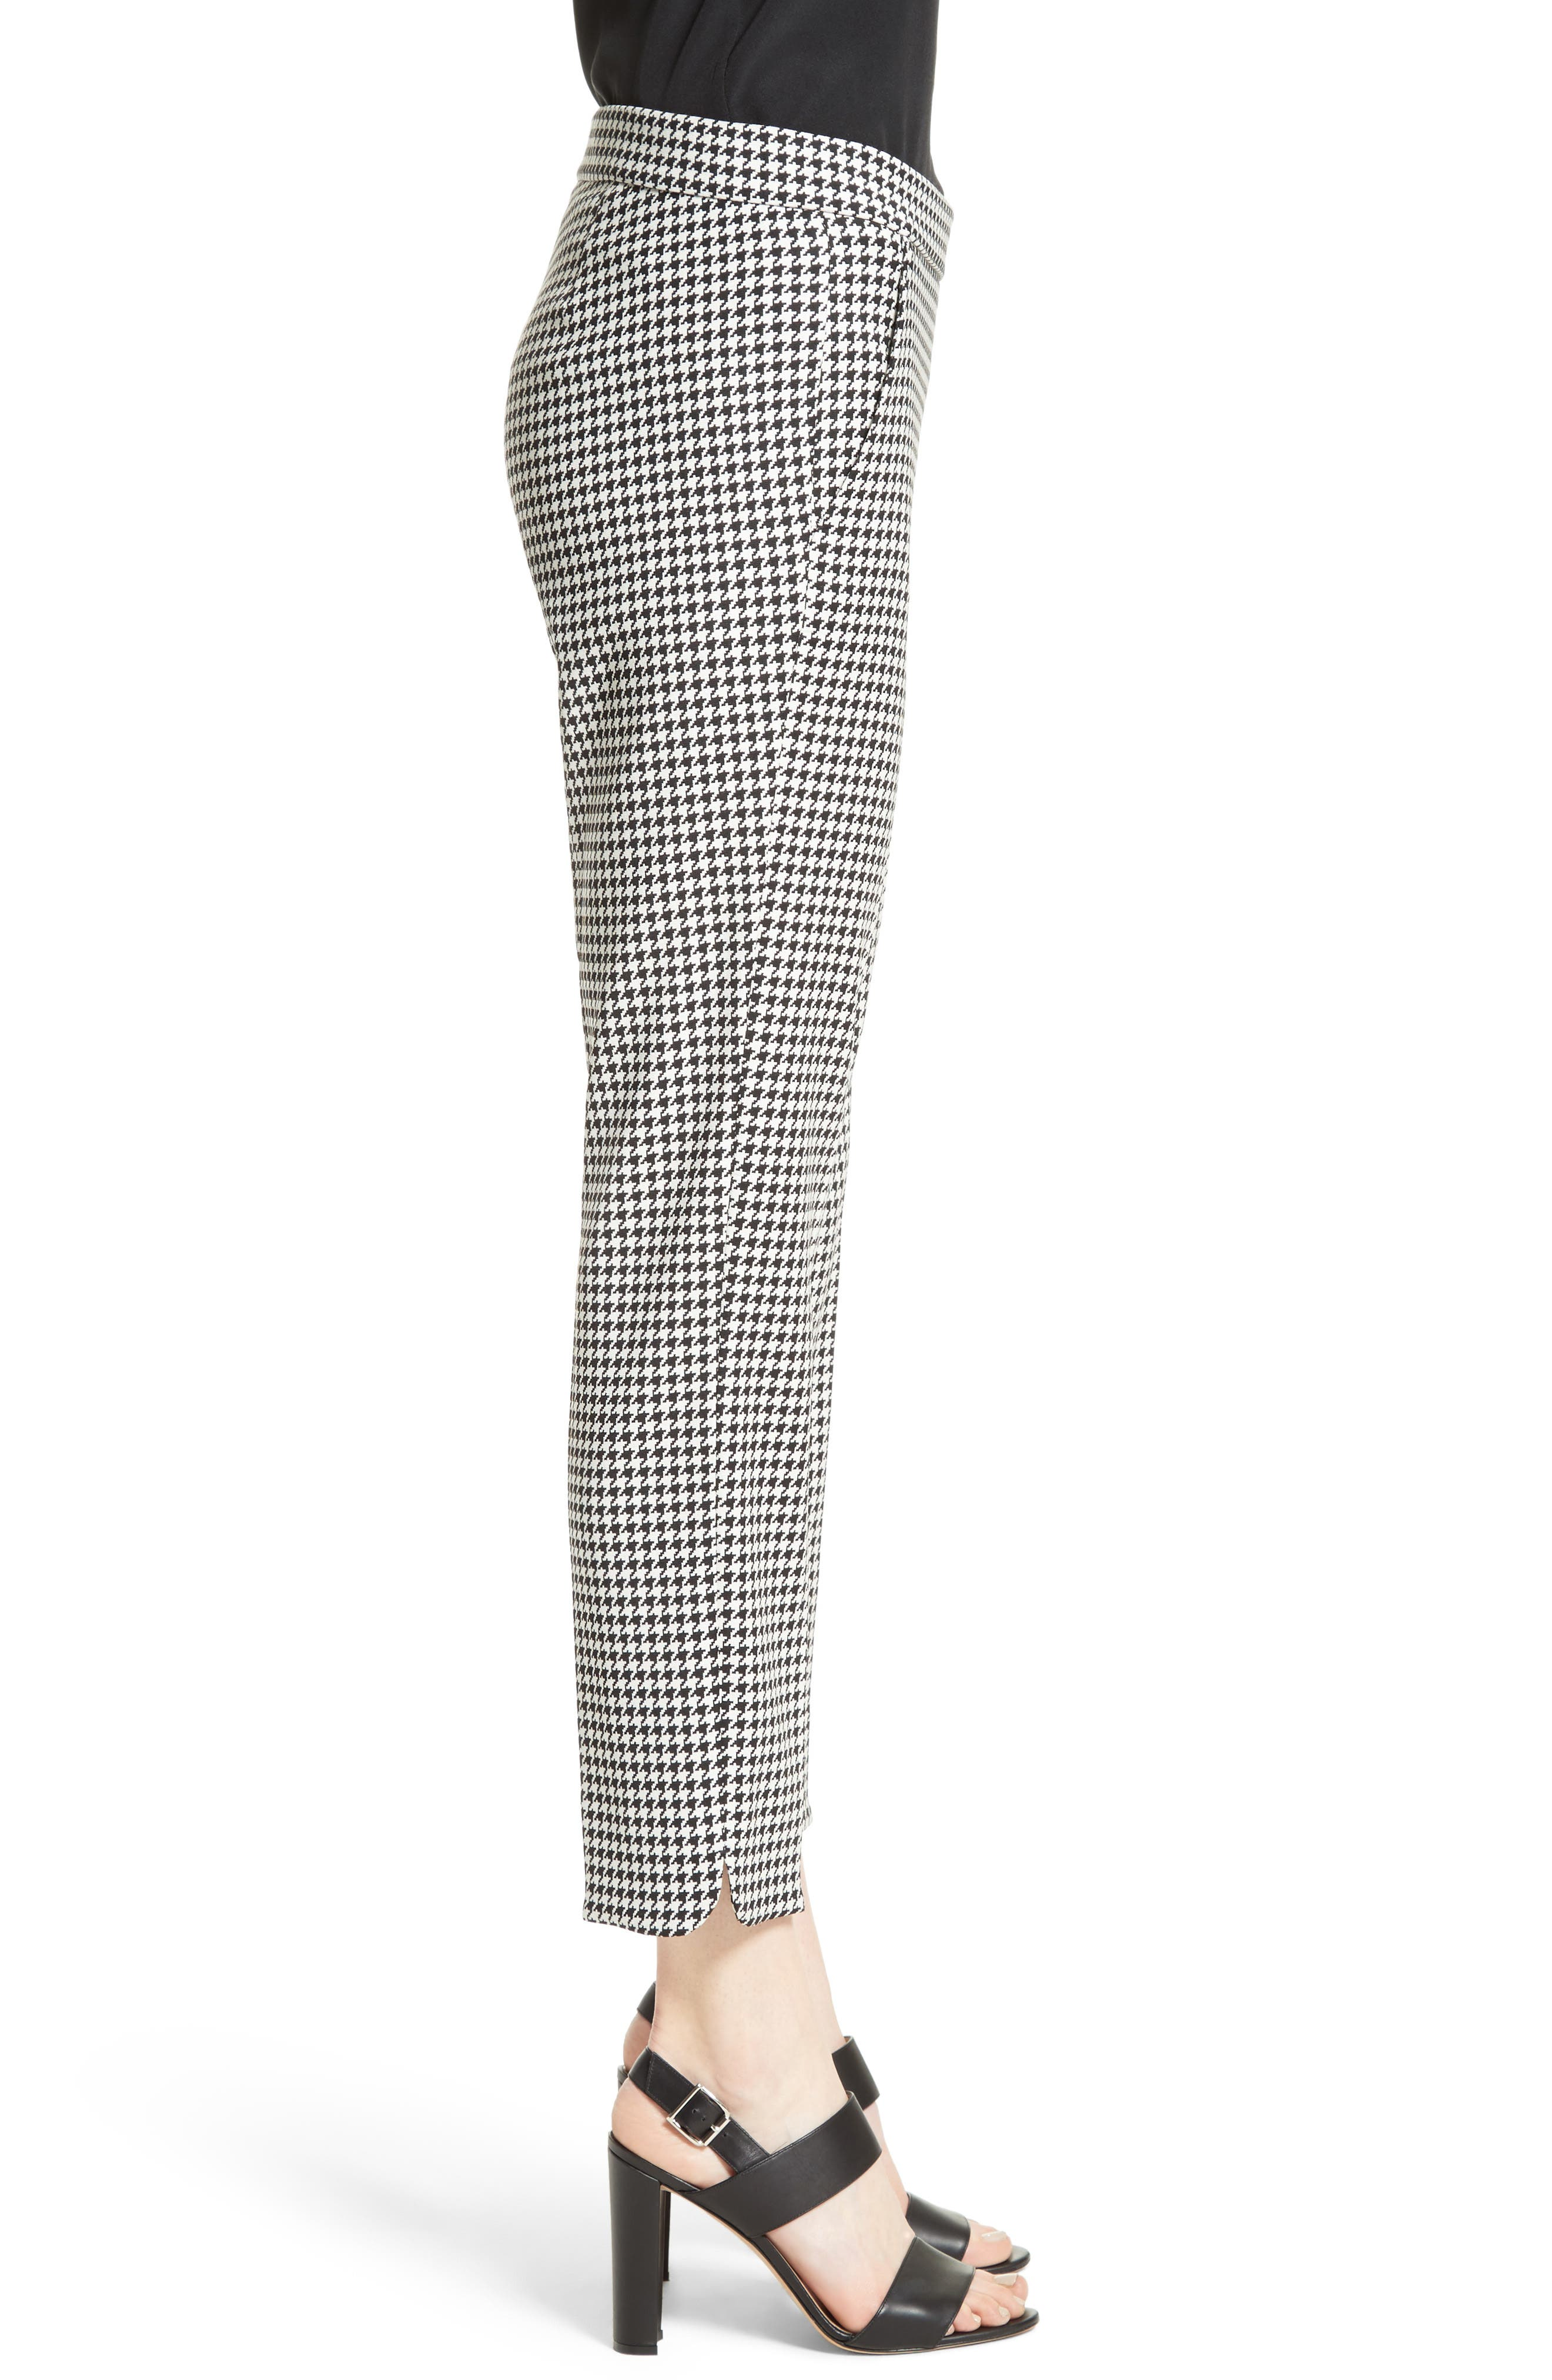 Astrale Houndstooth Wool Blend Pants,                             Alternate thumbnail 3, color,                             001